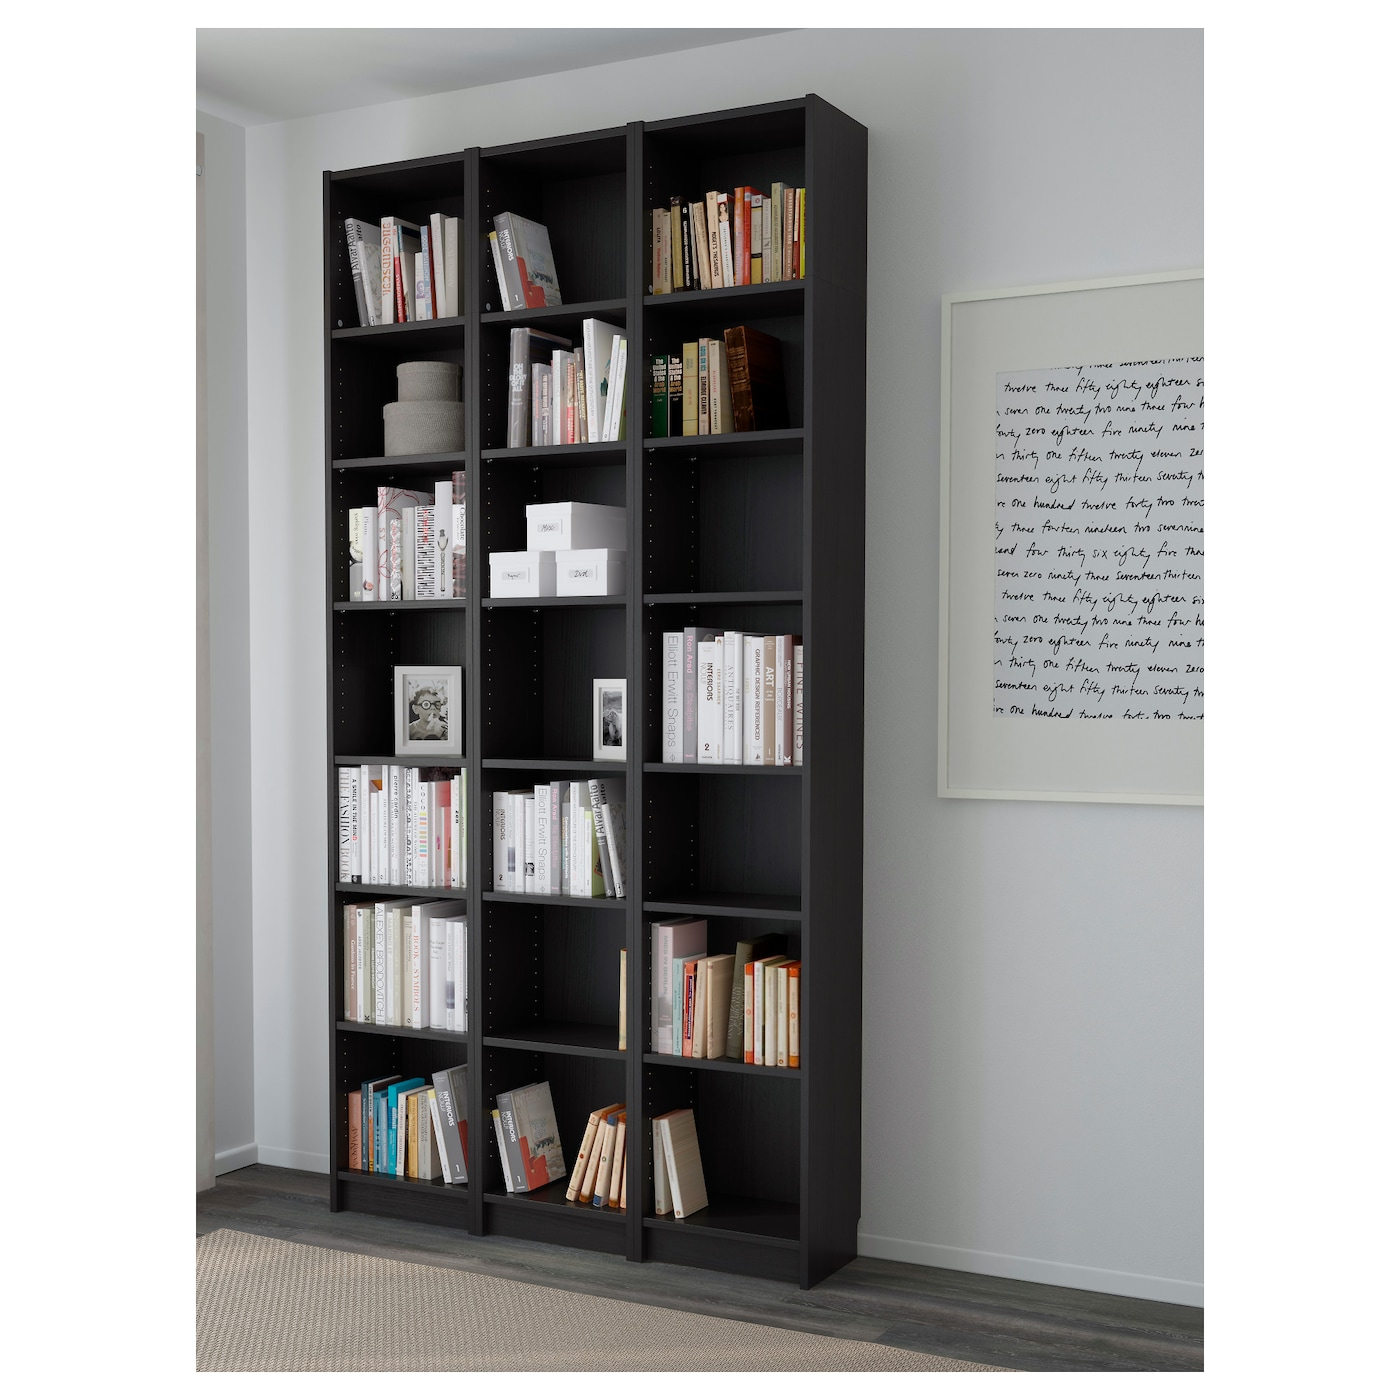 https://www.ikea.com/be/nl/images/products/billy-boekenkast-zwartbruin__0451899_pe600829_s5.jpg